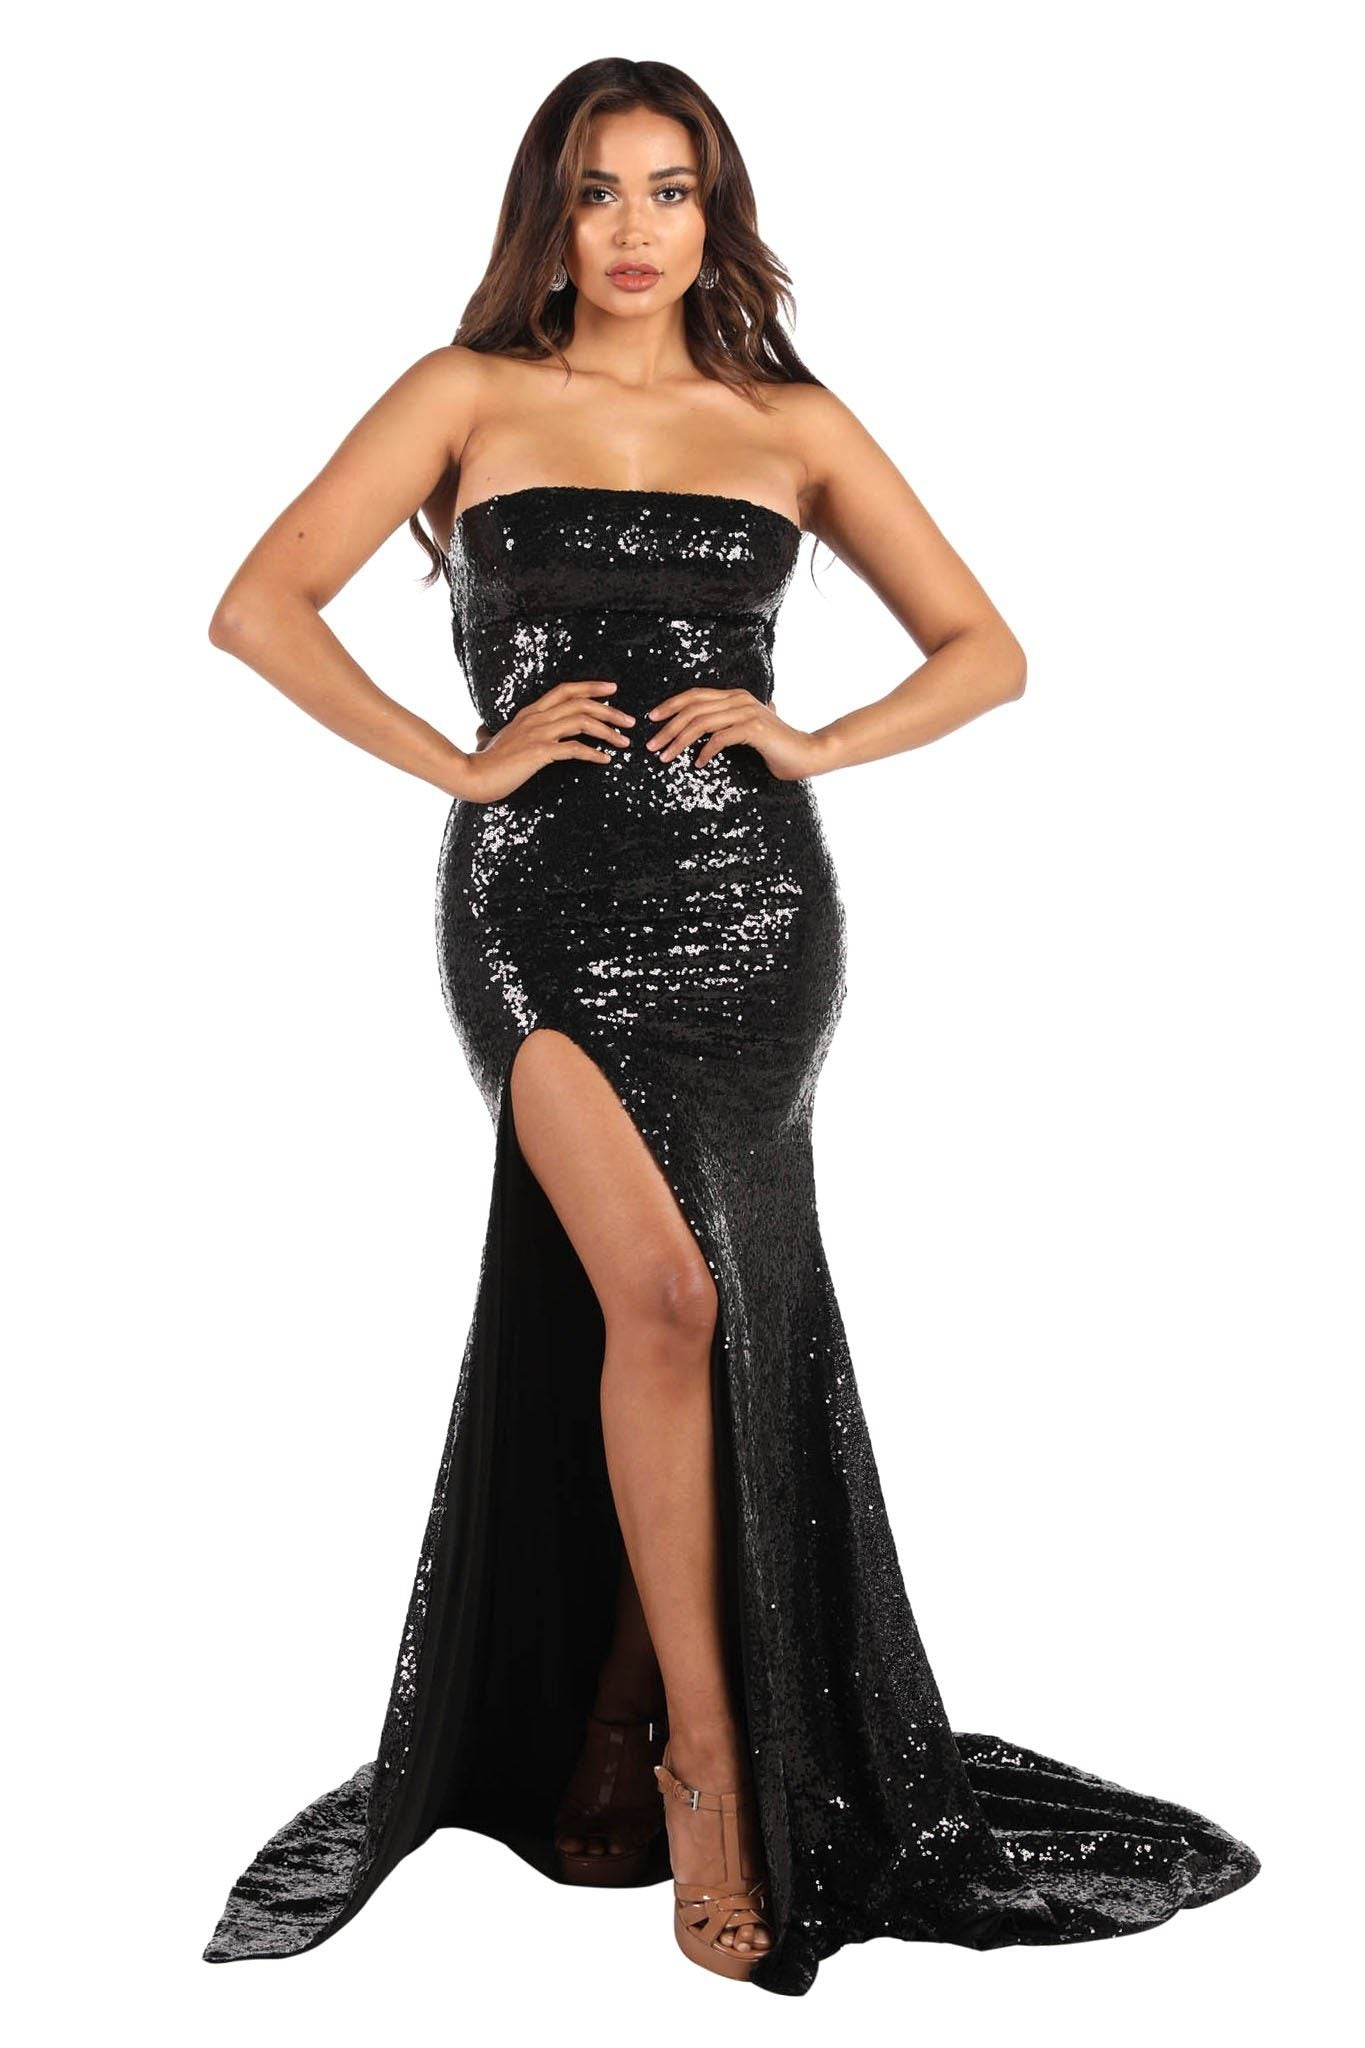 Black Shiny Sequin Form-Fitting Evening Long Gown with Straight Square Neckline, Thigh-High Leg Slit and Long Train